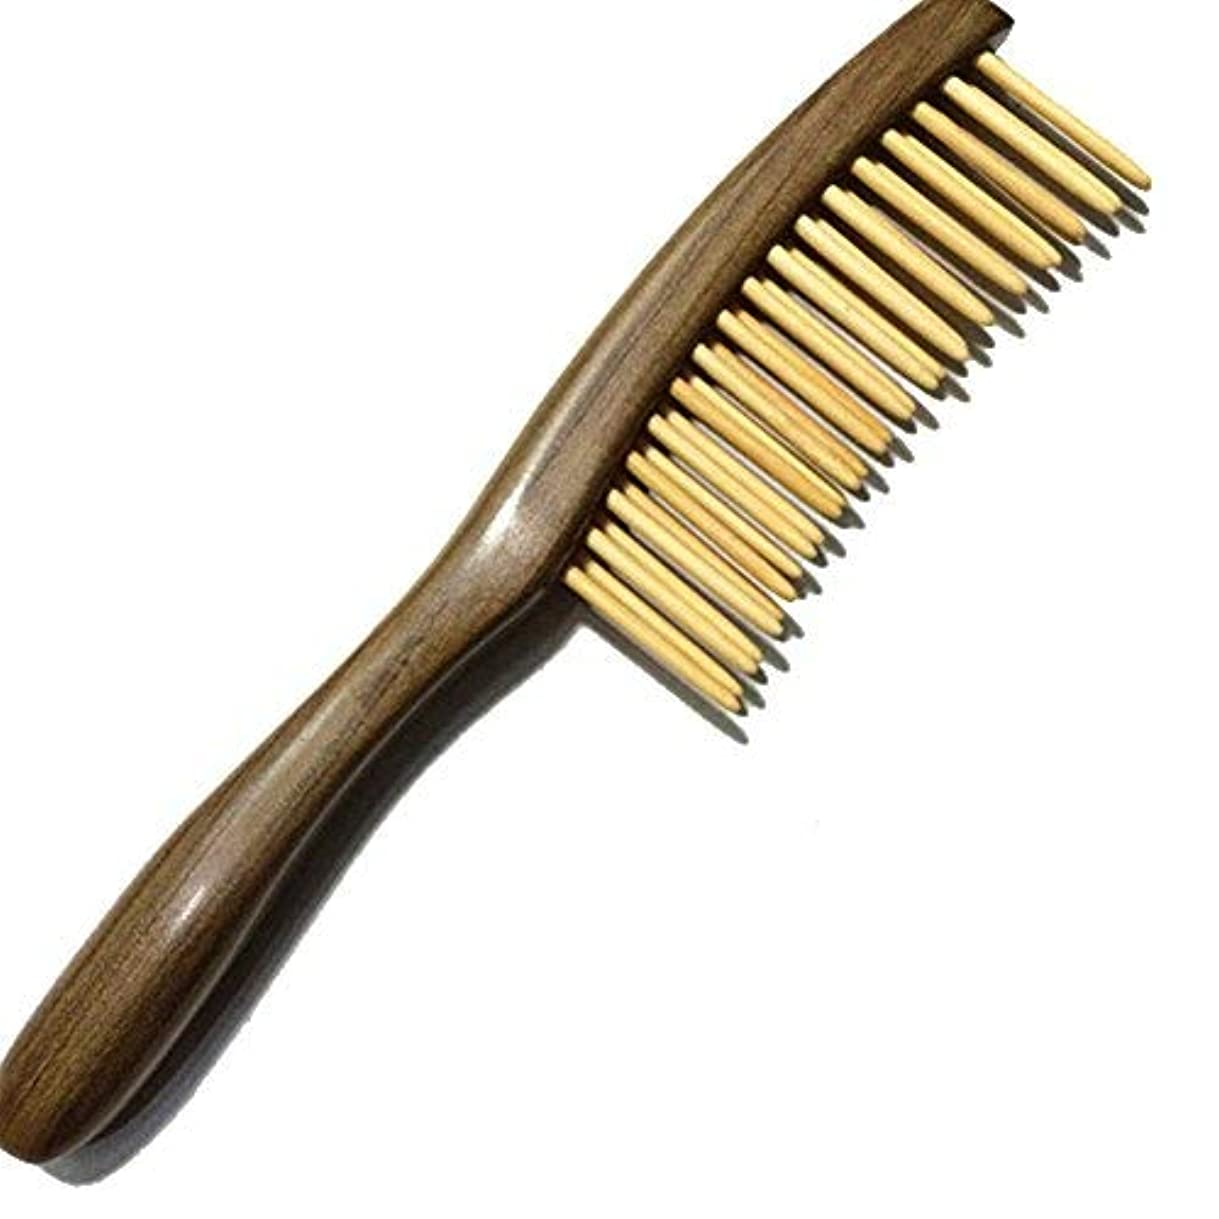 実質的にガラガラ熟達Fitlyiee Double Rows Teeth Sandalwood Hair Comb Anti-Static Handmade Wide Tooth Wooden Comb [並行輸入品]